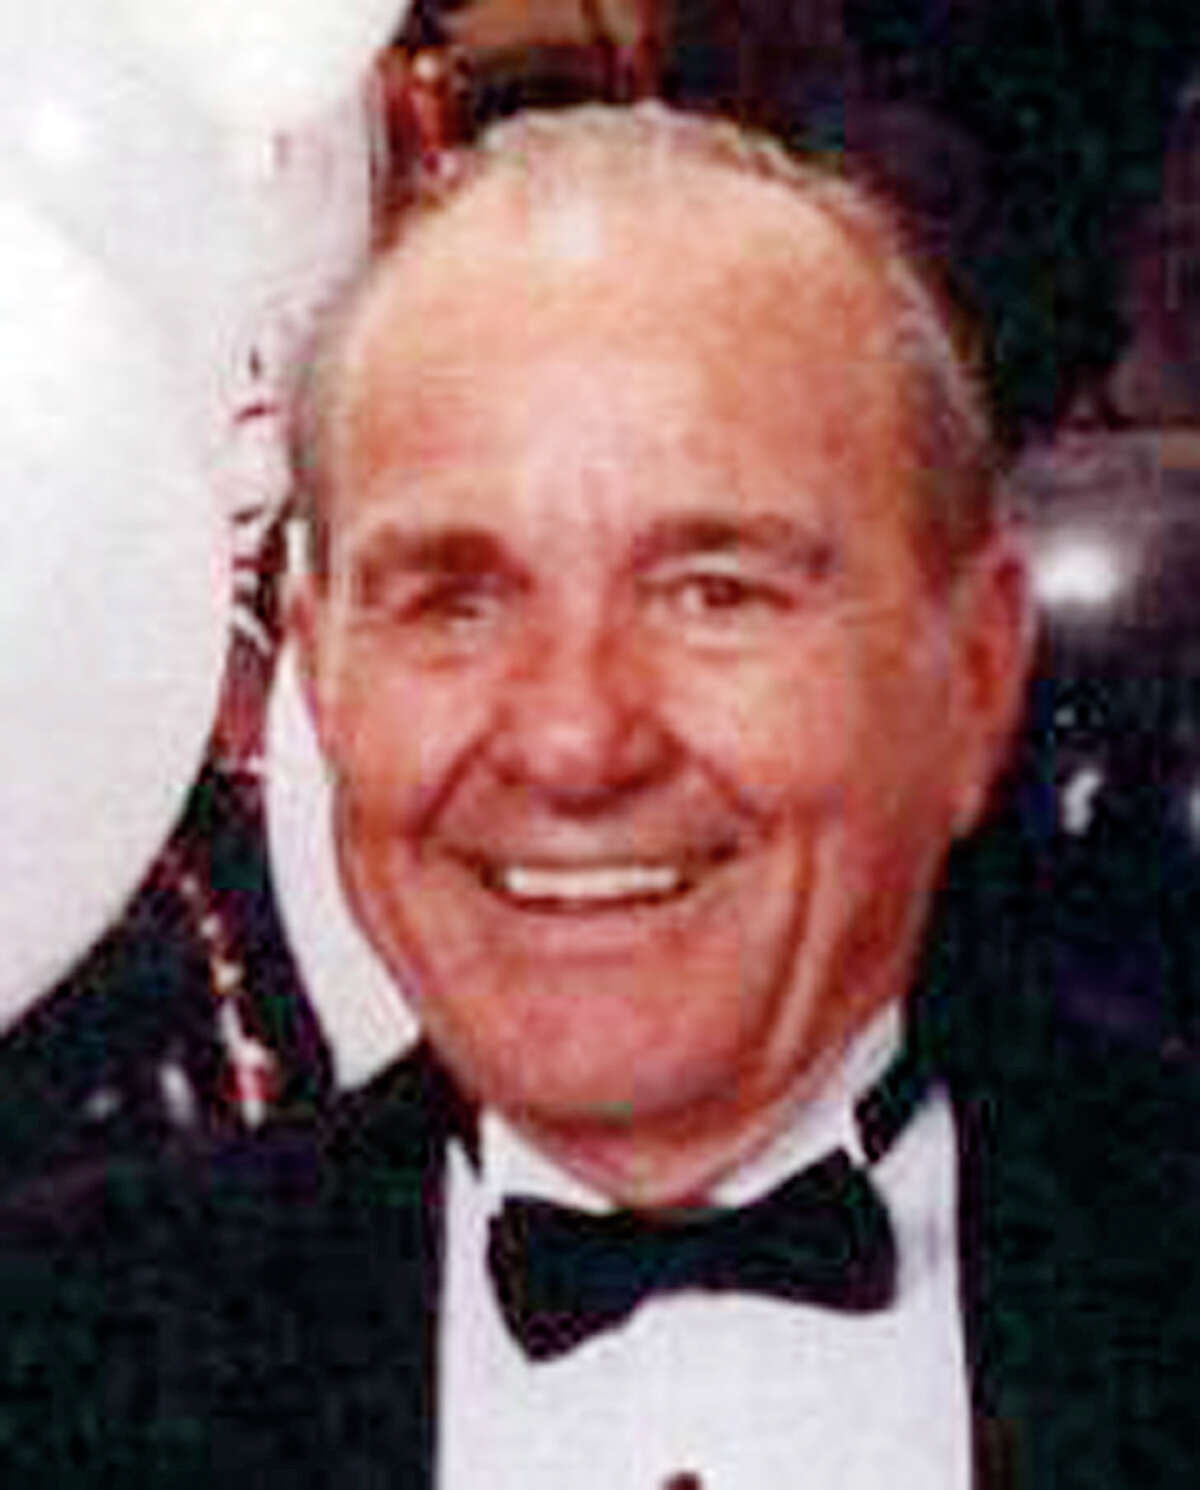 George Wechsler was the former owner of Wolfe Nursery.